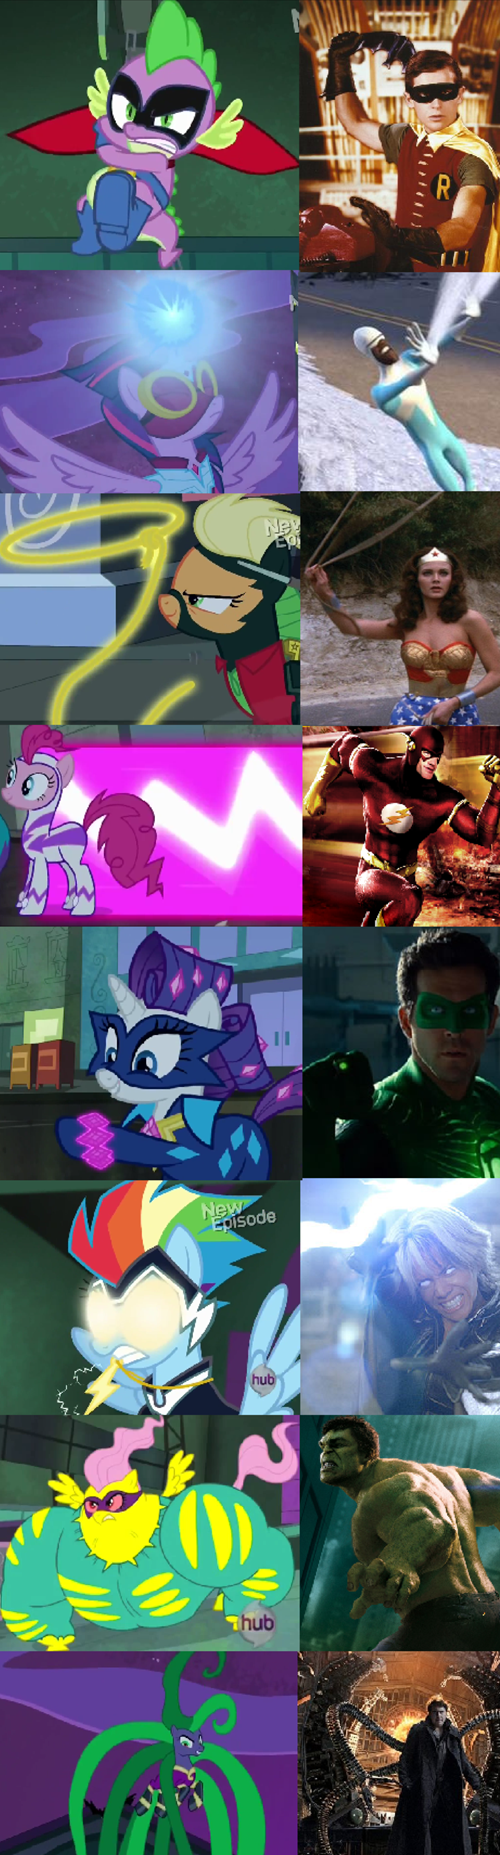 MLP,superheroes,mane 6,power ponies